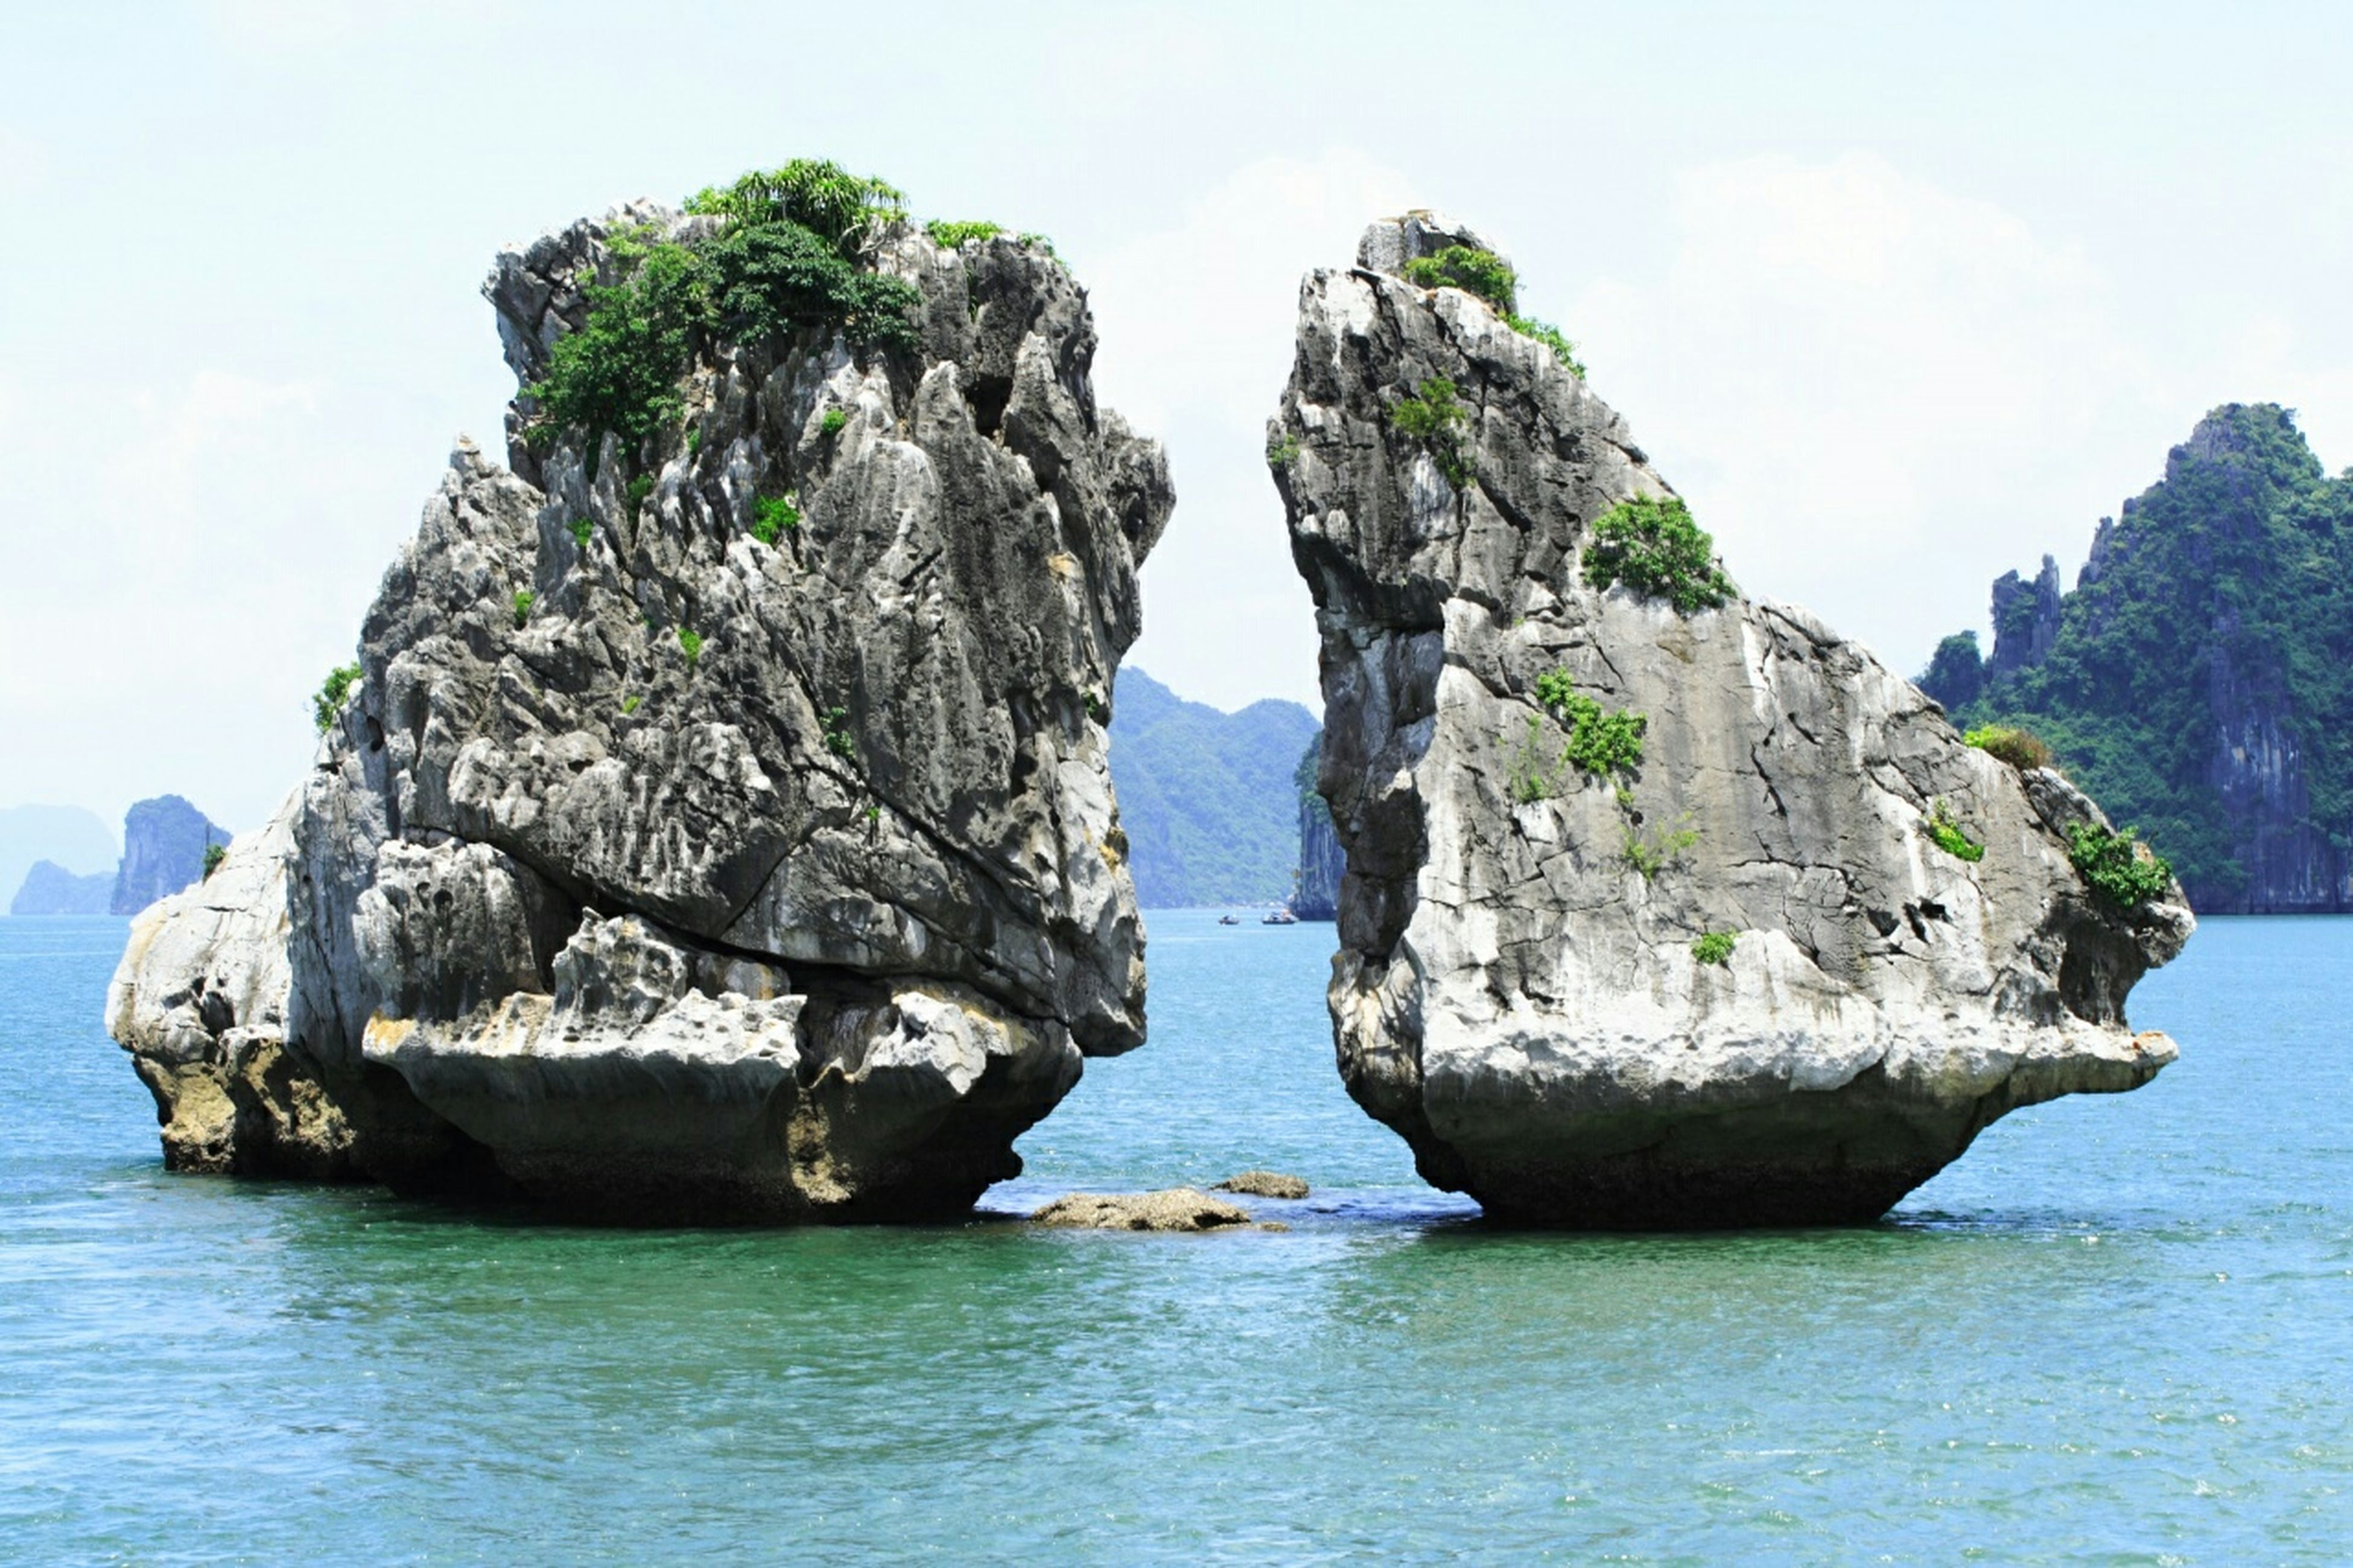 water, sea, nautical vessel, boat, transportation, rock - object, tranquility, rock formation, waterfront, sky, tranquil scene, scenics, mode of transport, beauty in nature, nature, horizon over water, rock, cliff, day, idyllic